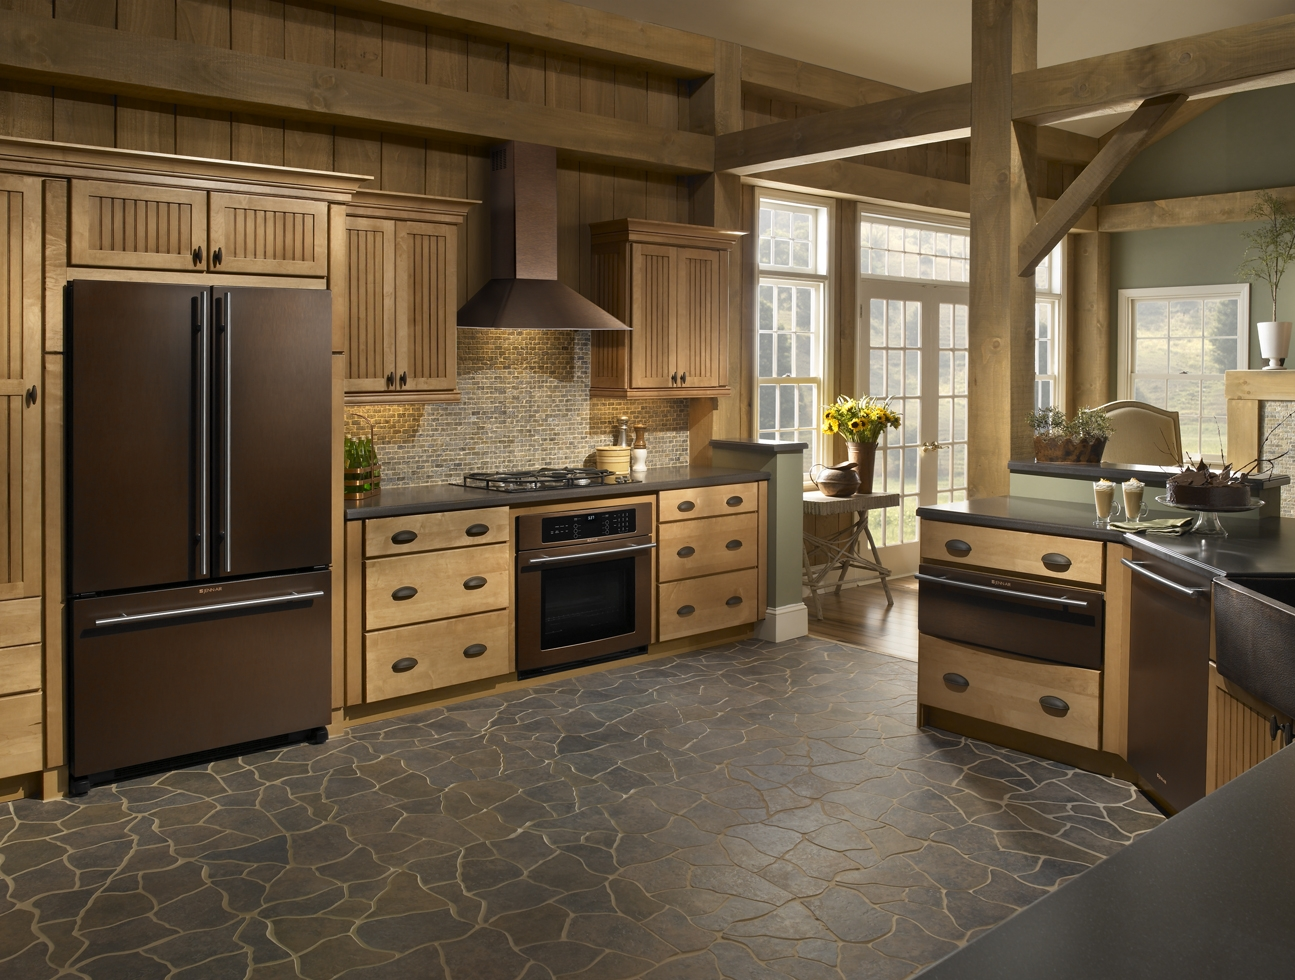 Oil Rubbed Bronze Kitchen Liances In Rusttic Style Room Natural Stone Tiles For Kicthen